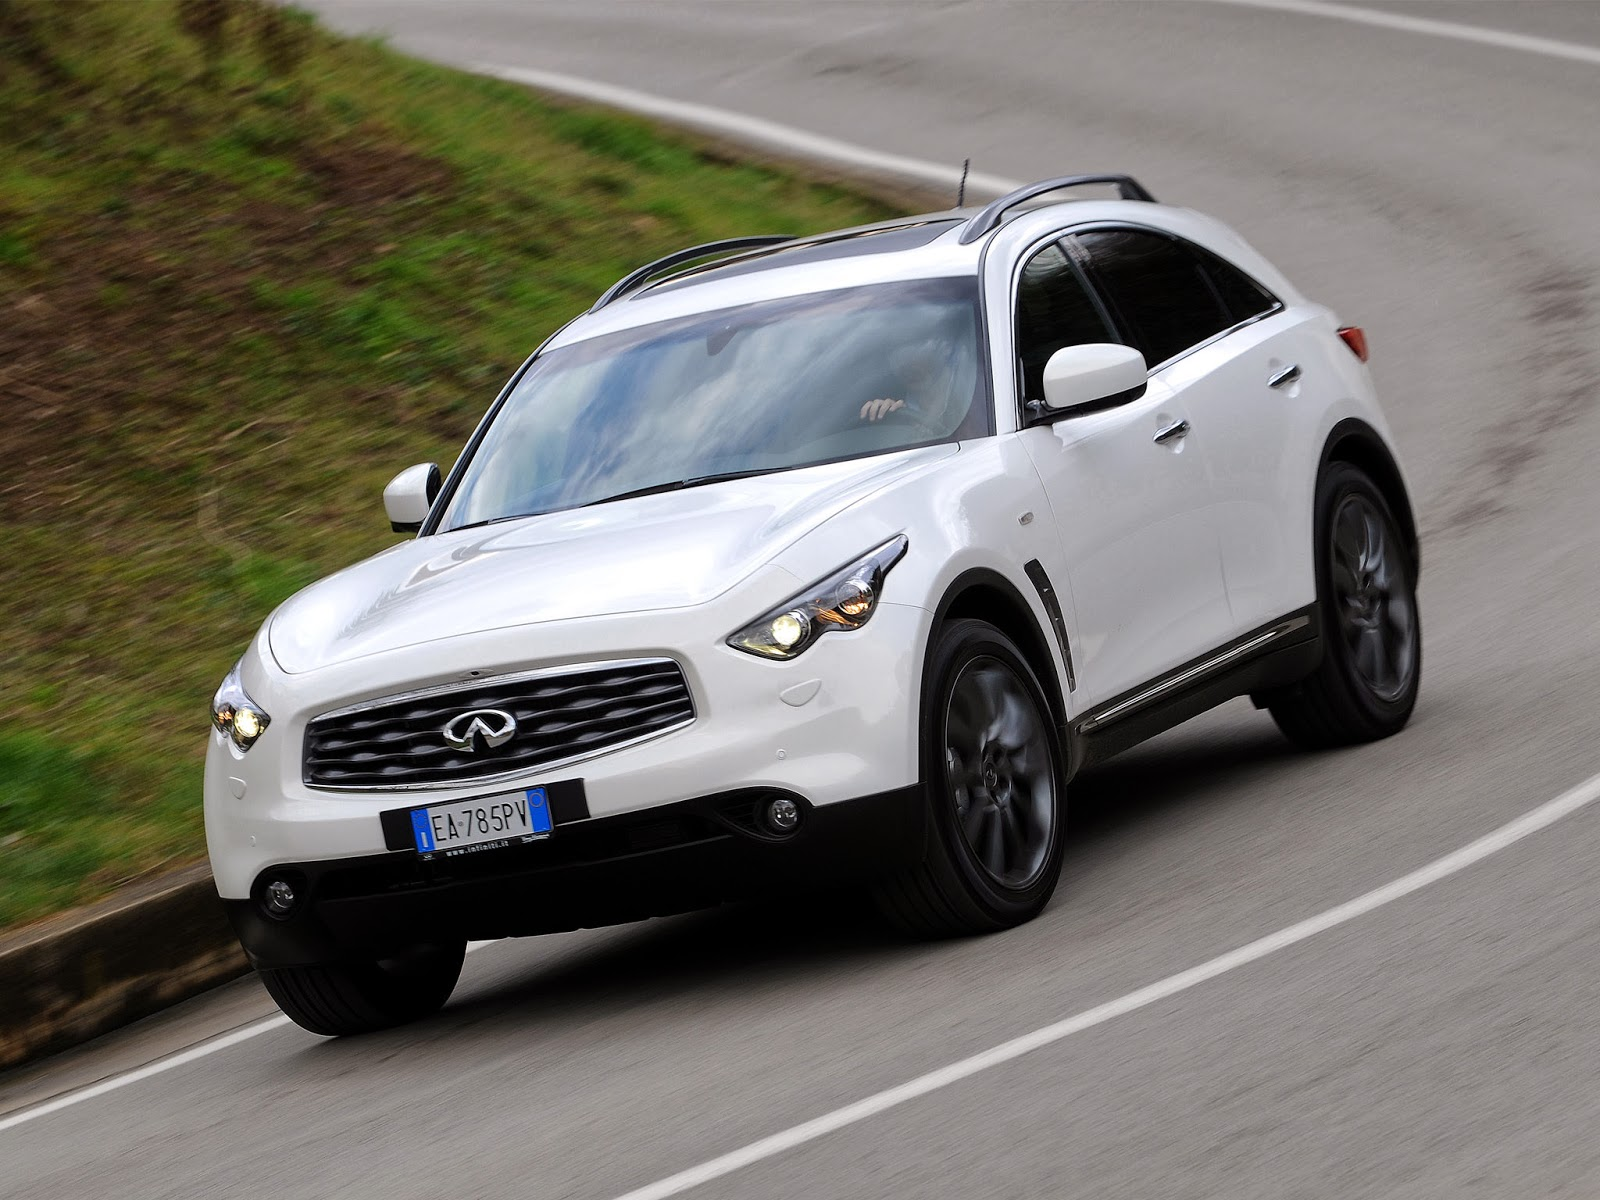 Infiniti fx limited edition model year 2010 news cars new infiniti fx limited edition model year 2010 vanachro Gallery